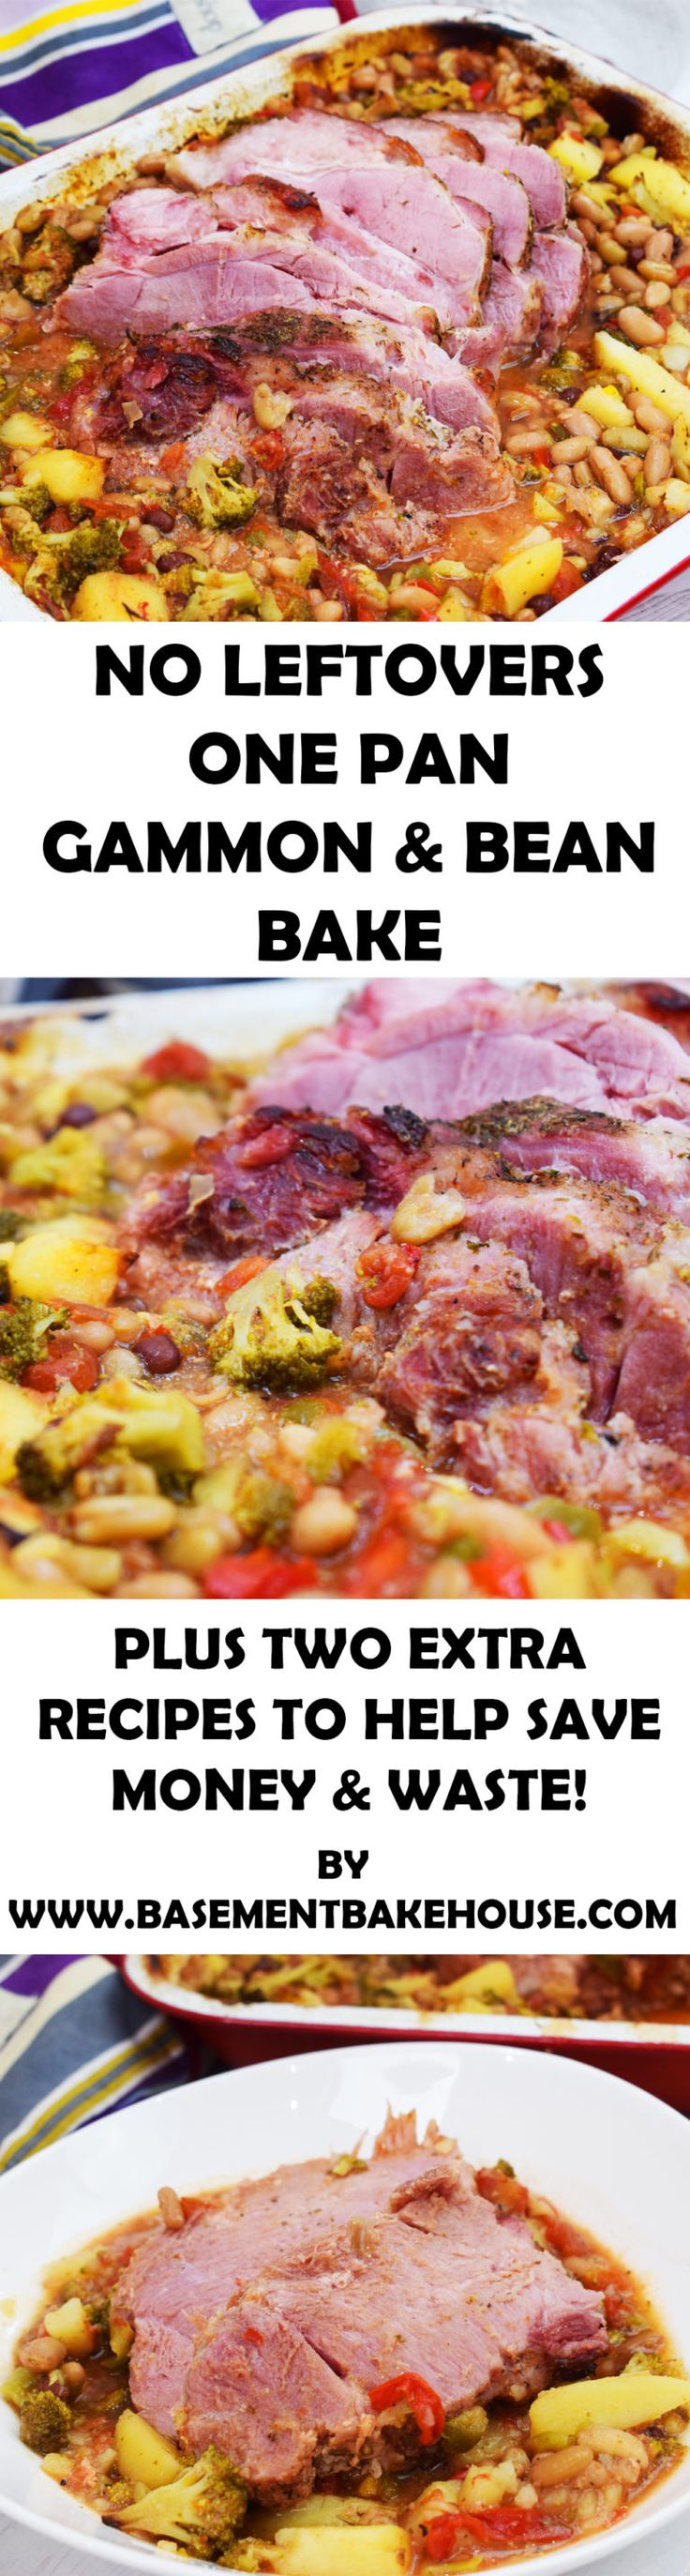 Make This Delicious 'no Waste One Pan Gammon & Bean Bake' And Reduce Food